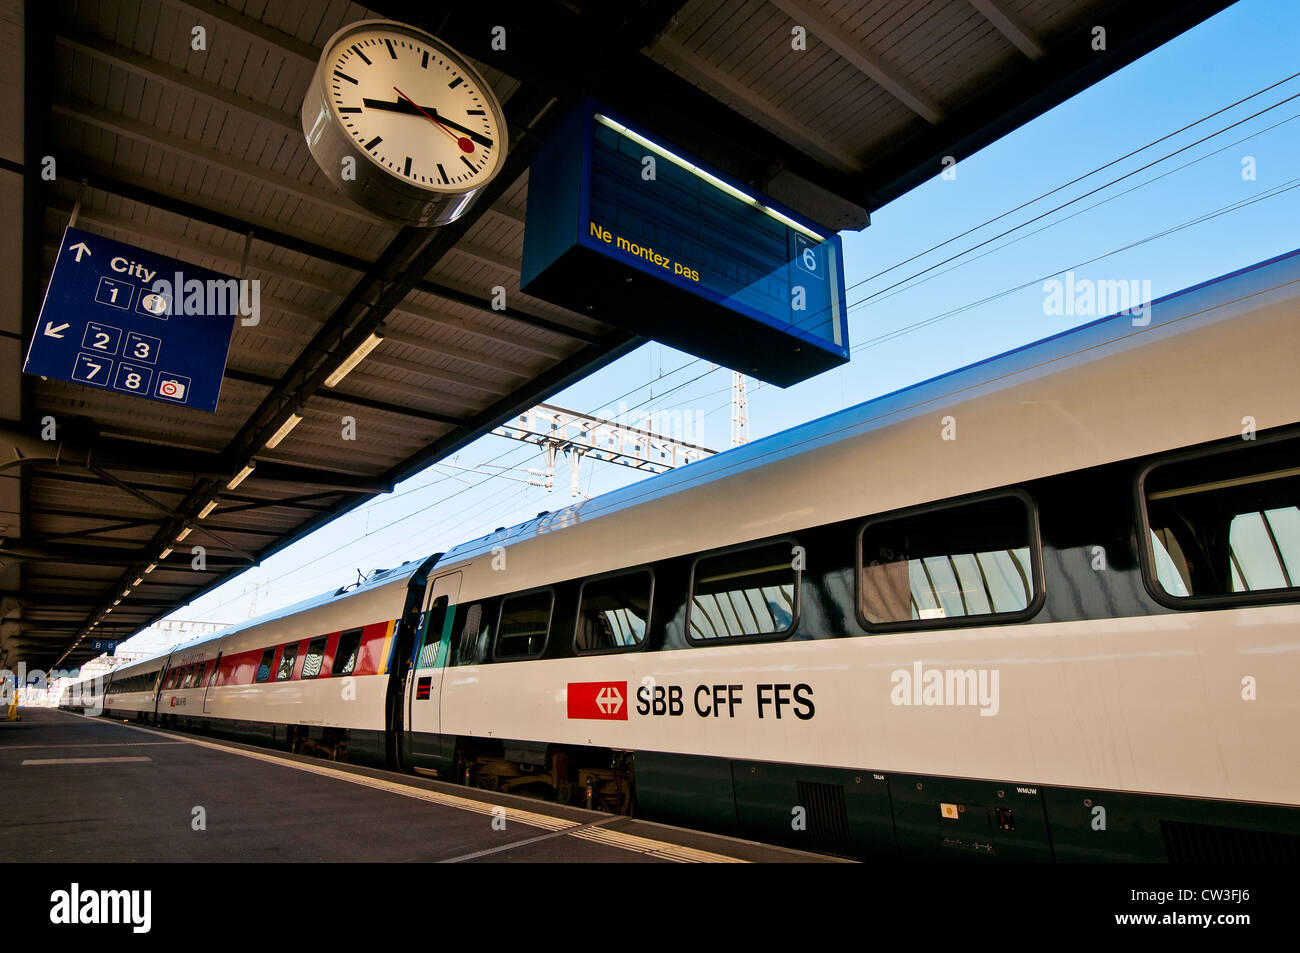 Swiss intercity Tilting train at main railway station in Geneva, Switzerland - Stock Image